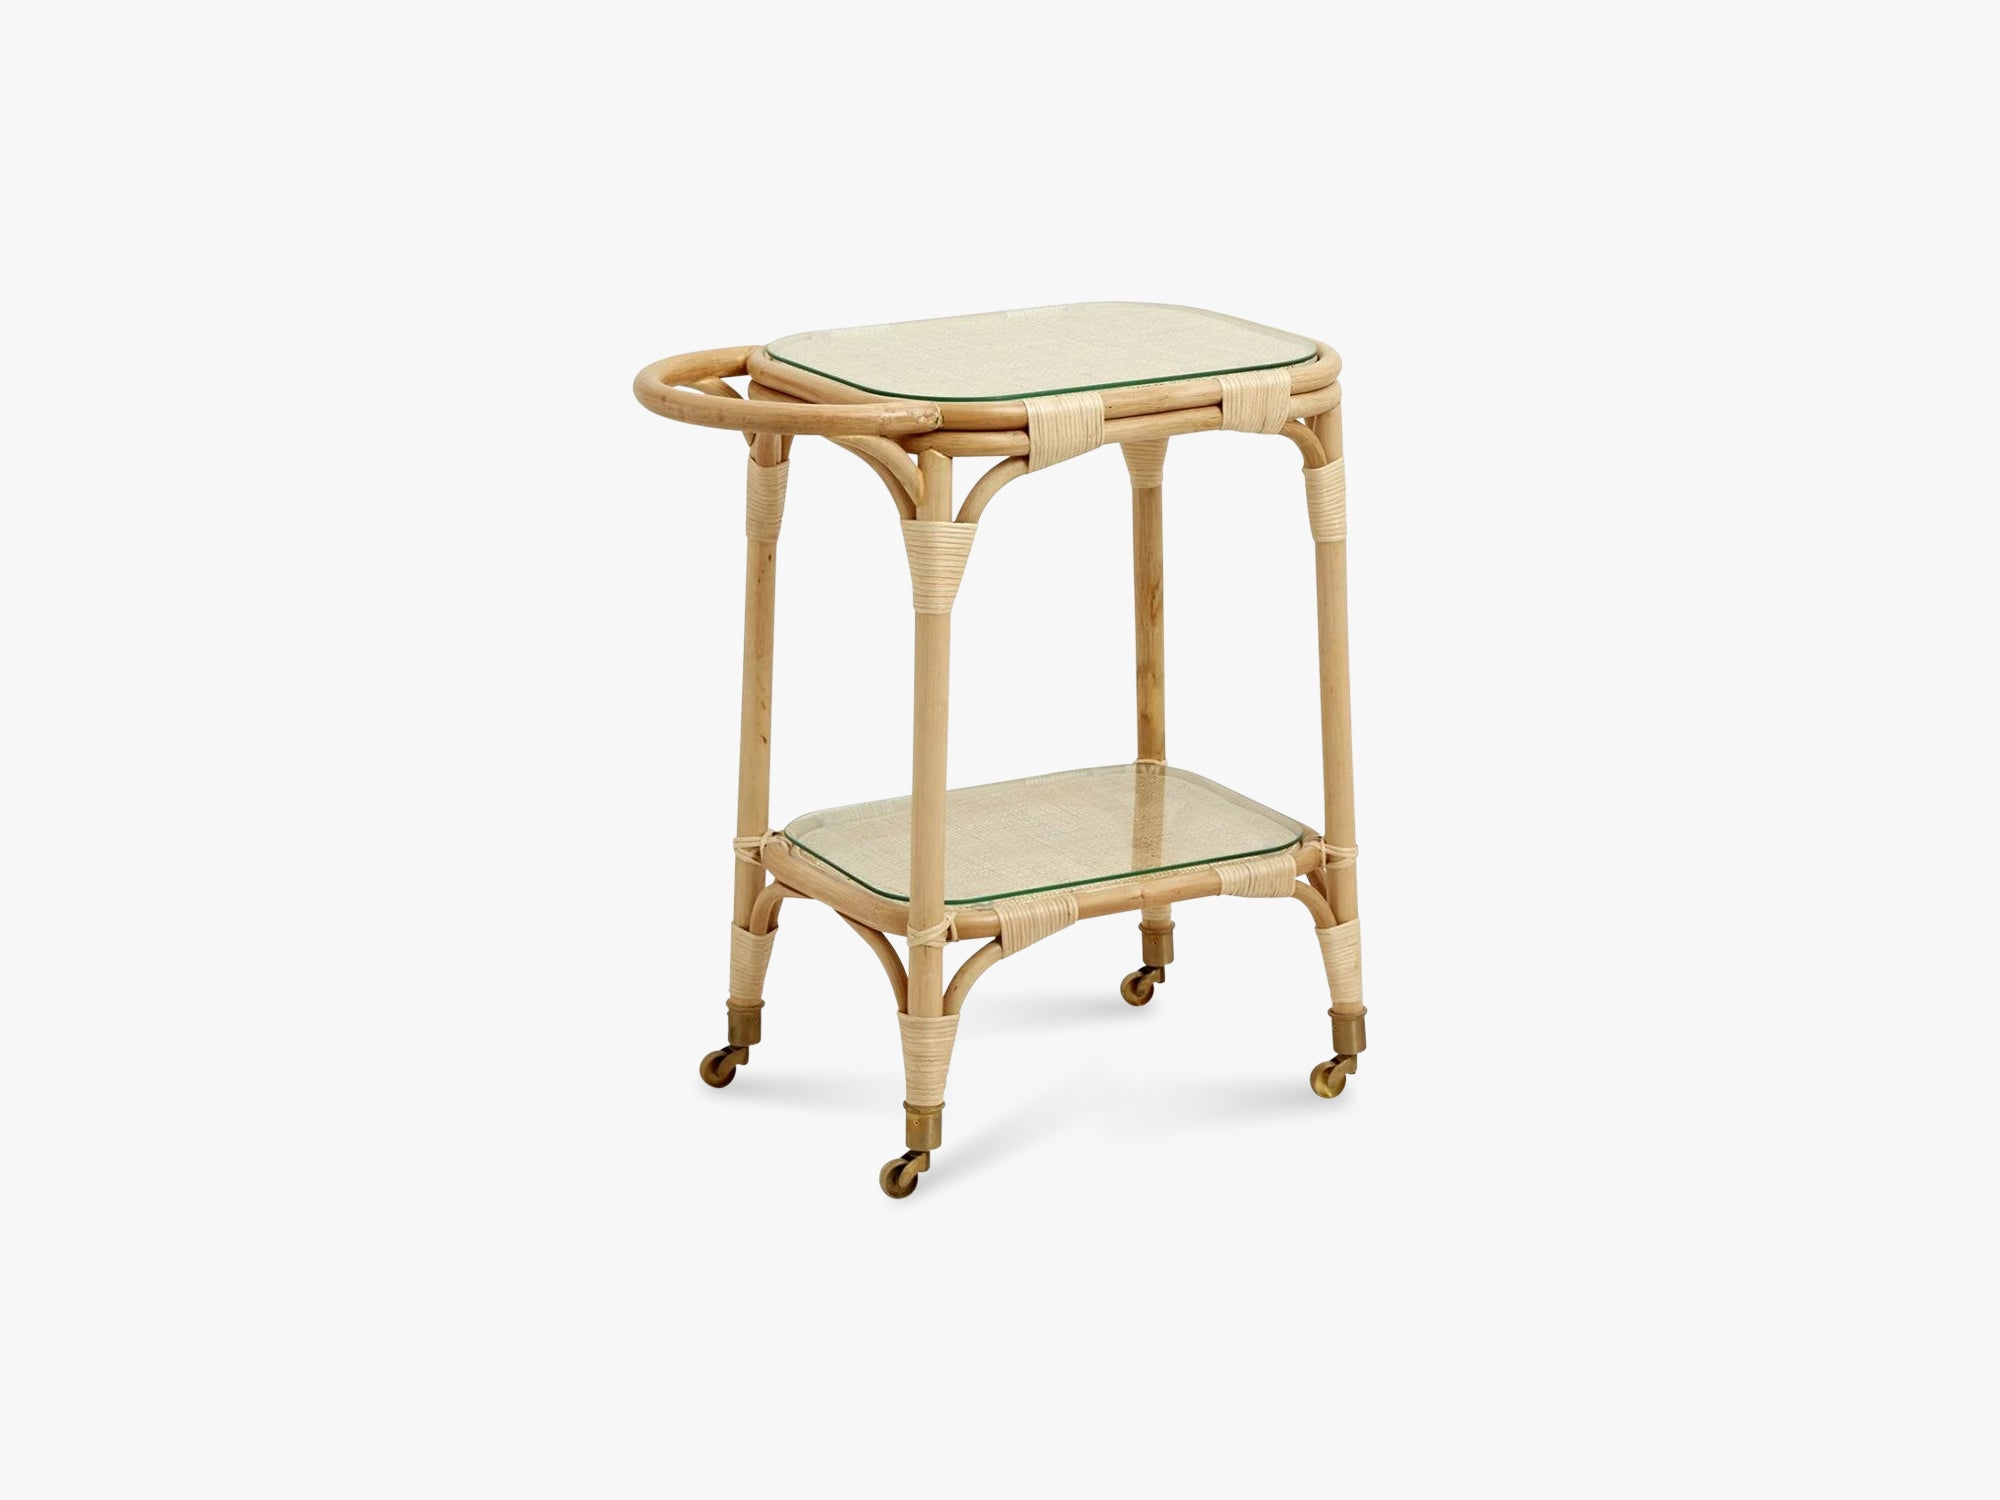 Rattan bar table w/brass wheels, glass fra Nordal